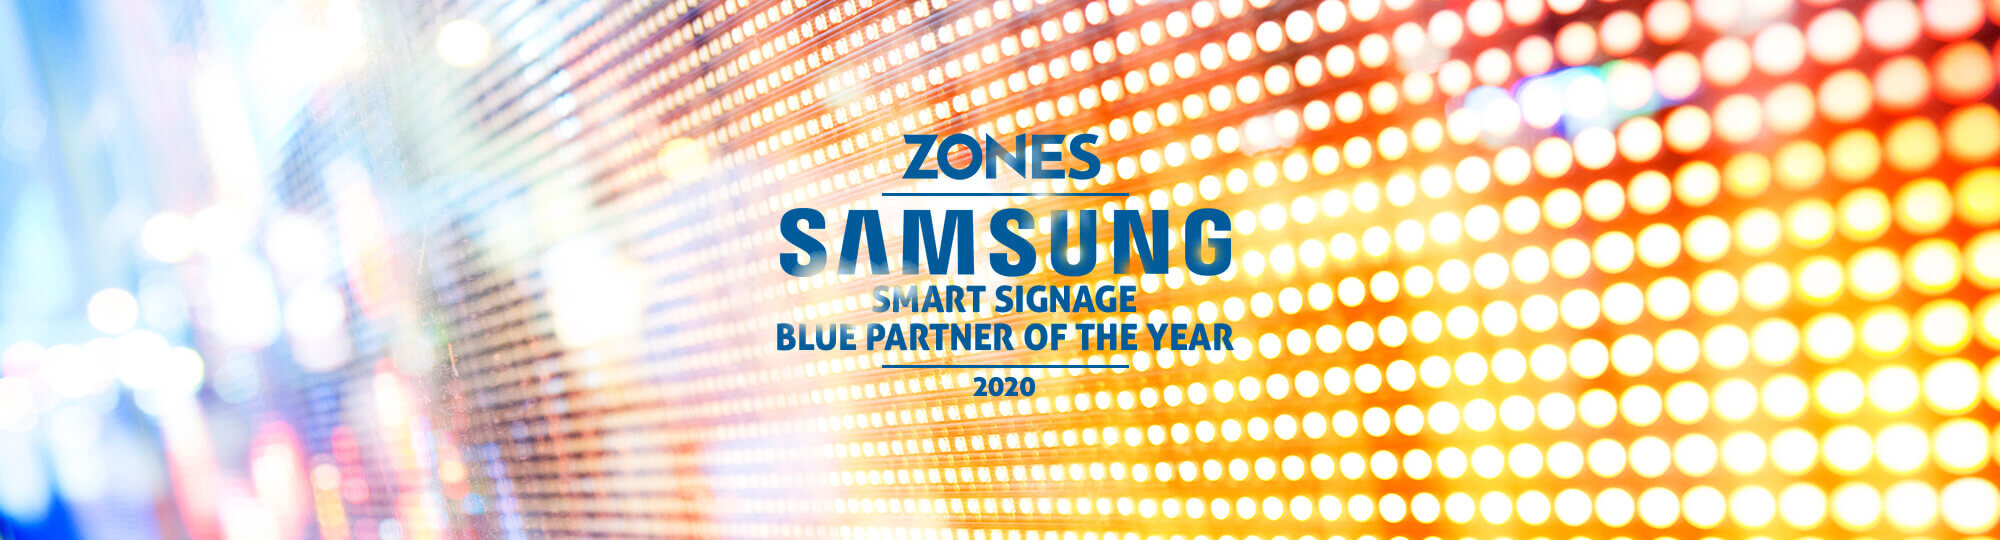 Zones: Samsung Smart Signage Blue Partner of the Year Award 2020